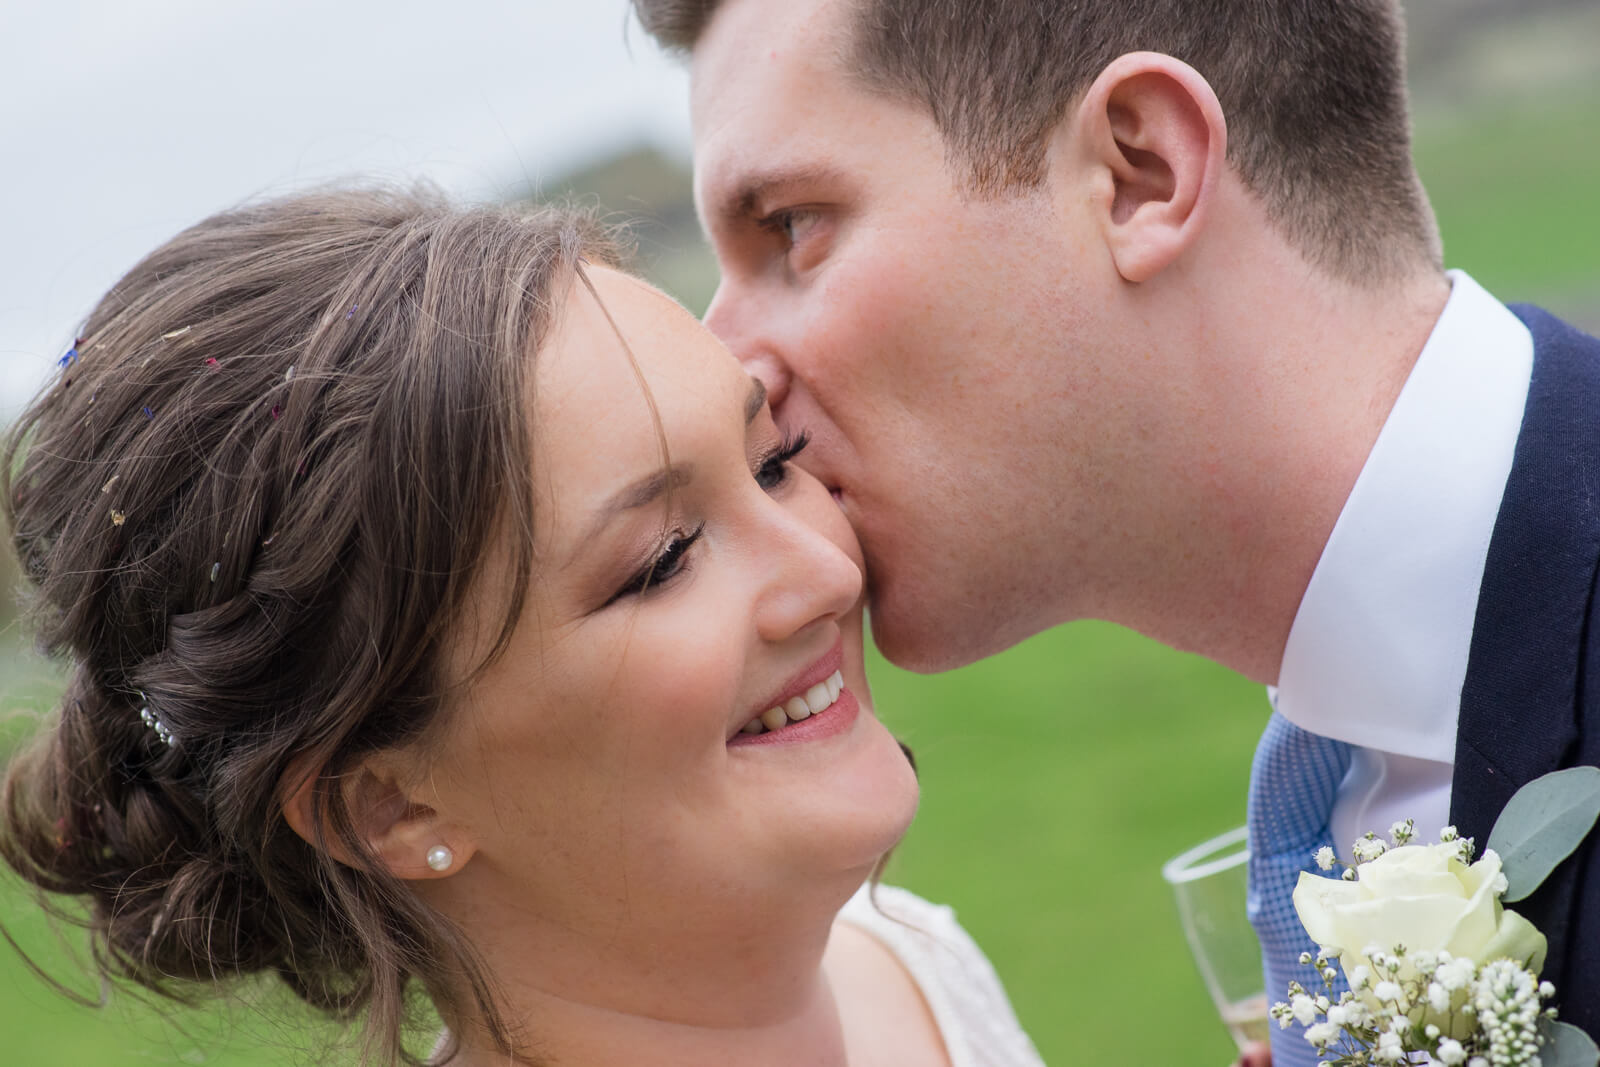 Close up portrait of the bride and groom taken as he kisses her on the cheek